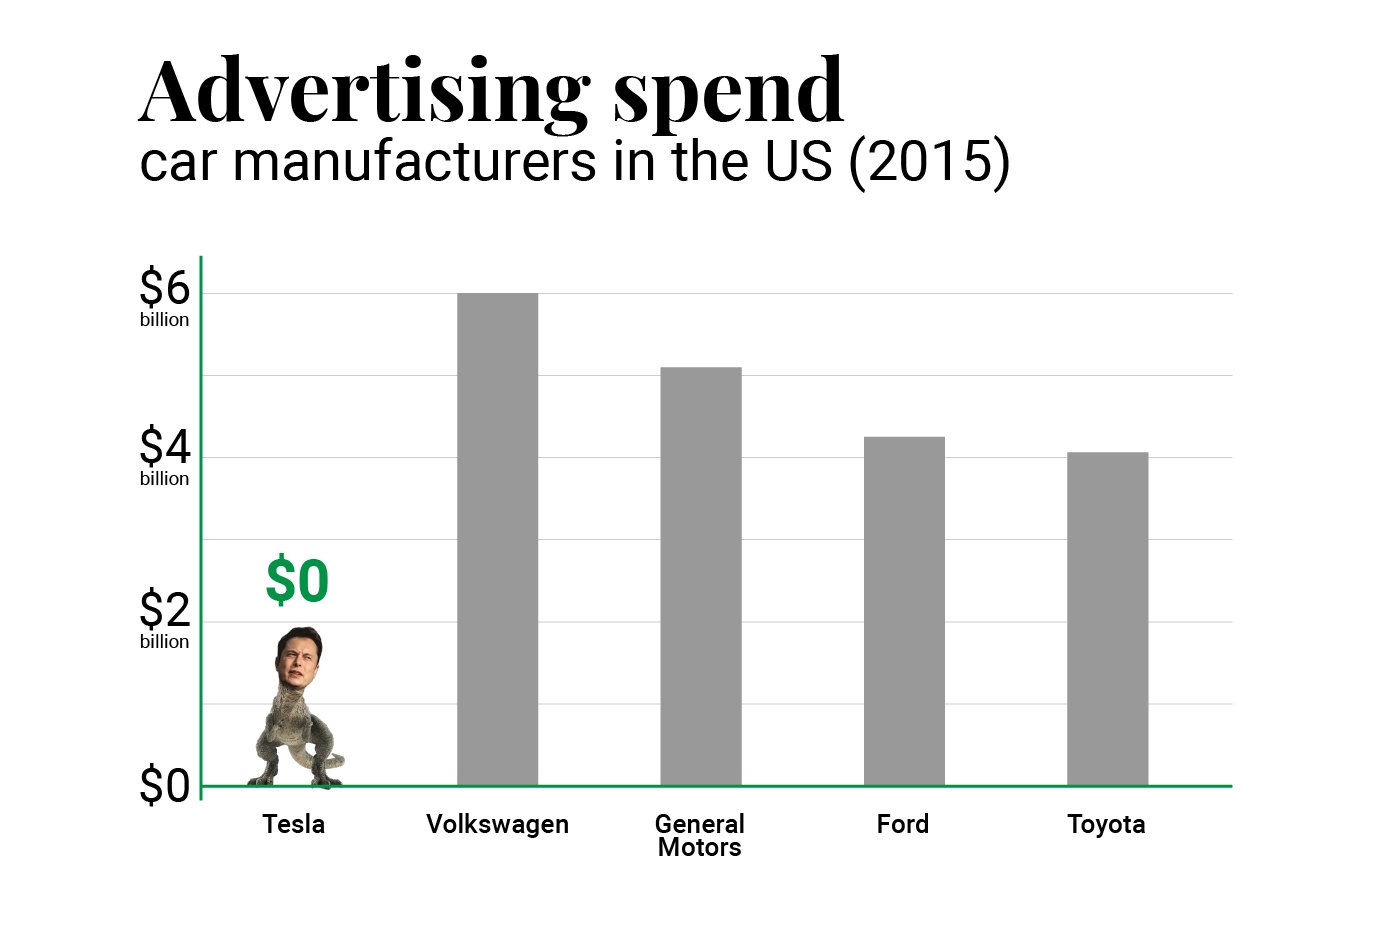 2015 Advertising Spend by car manufacturer in the US